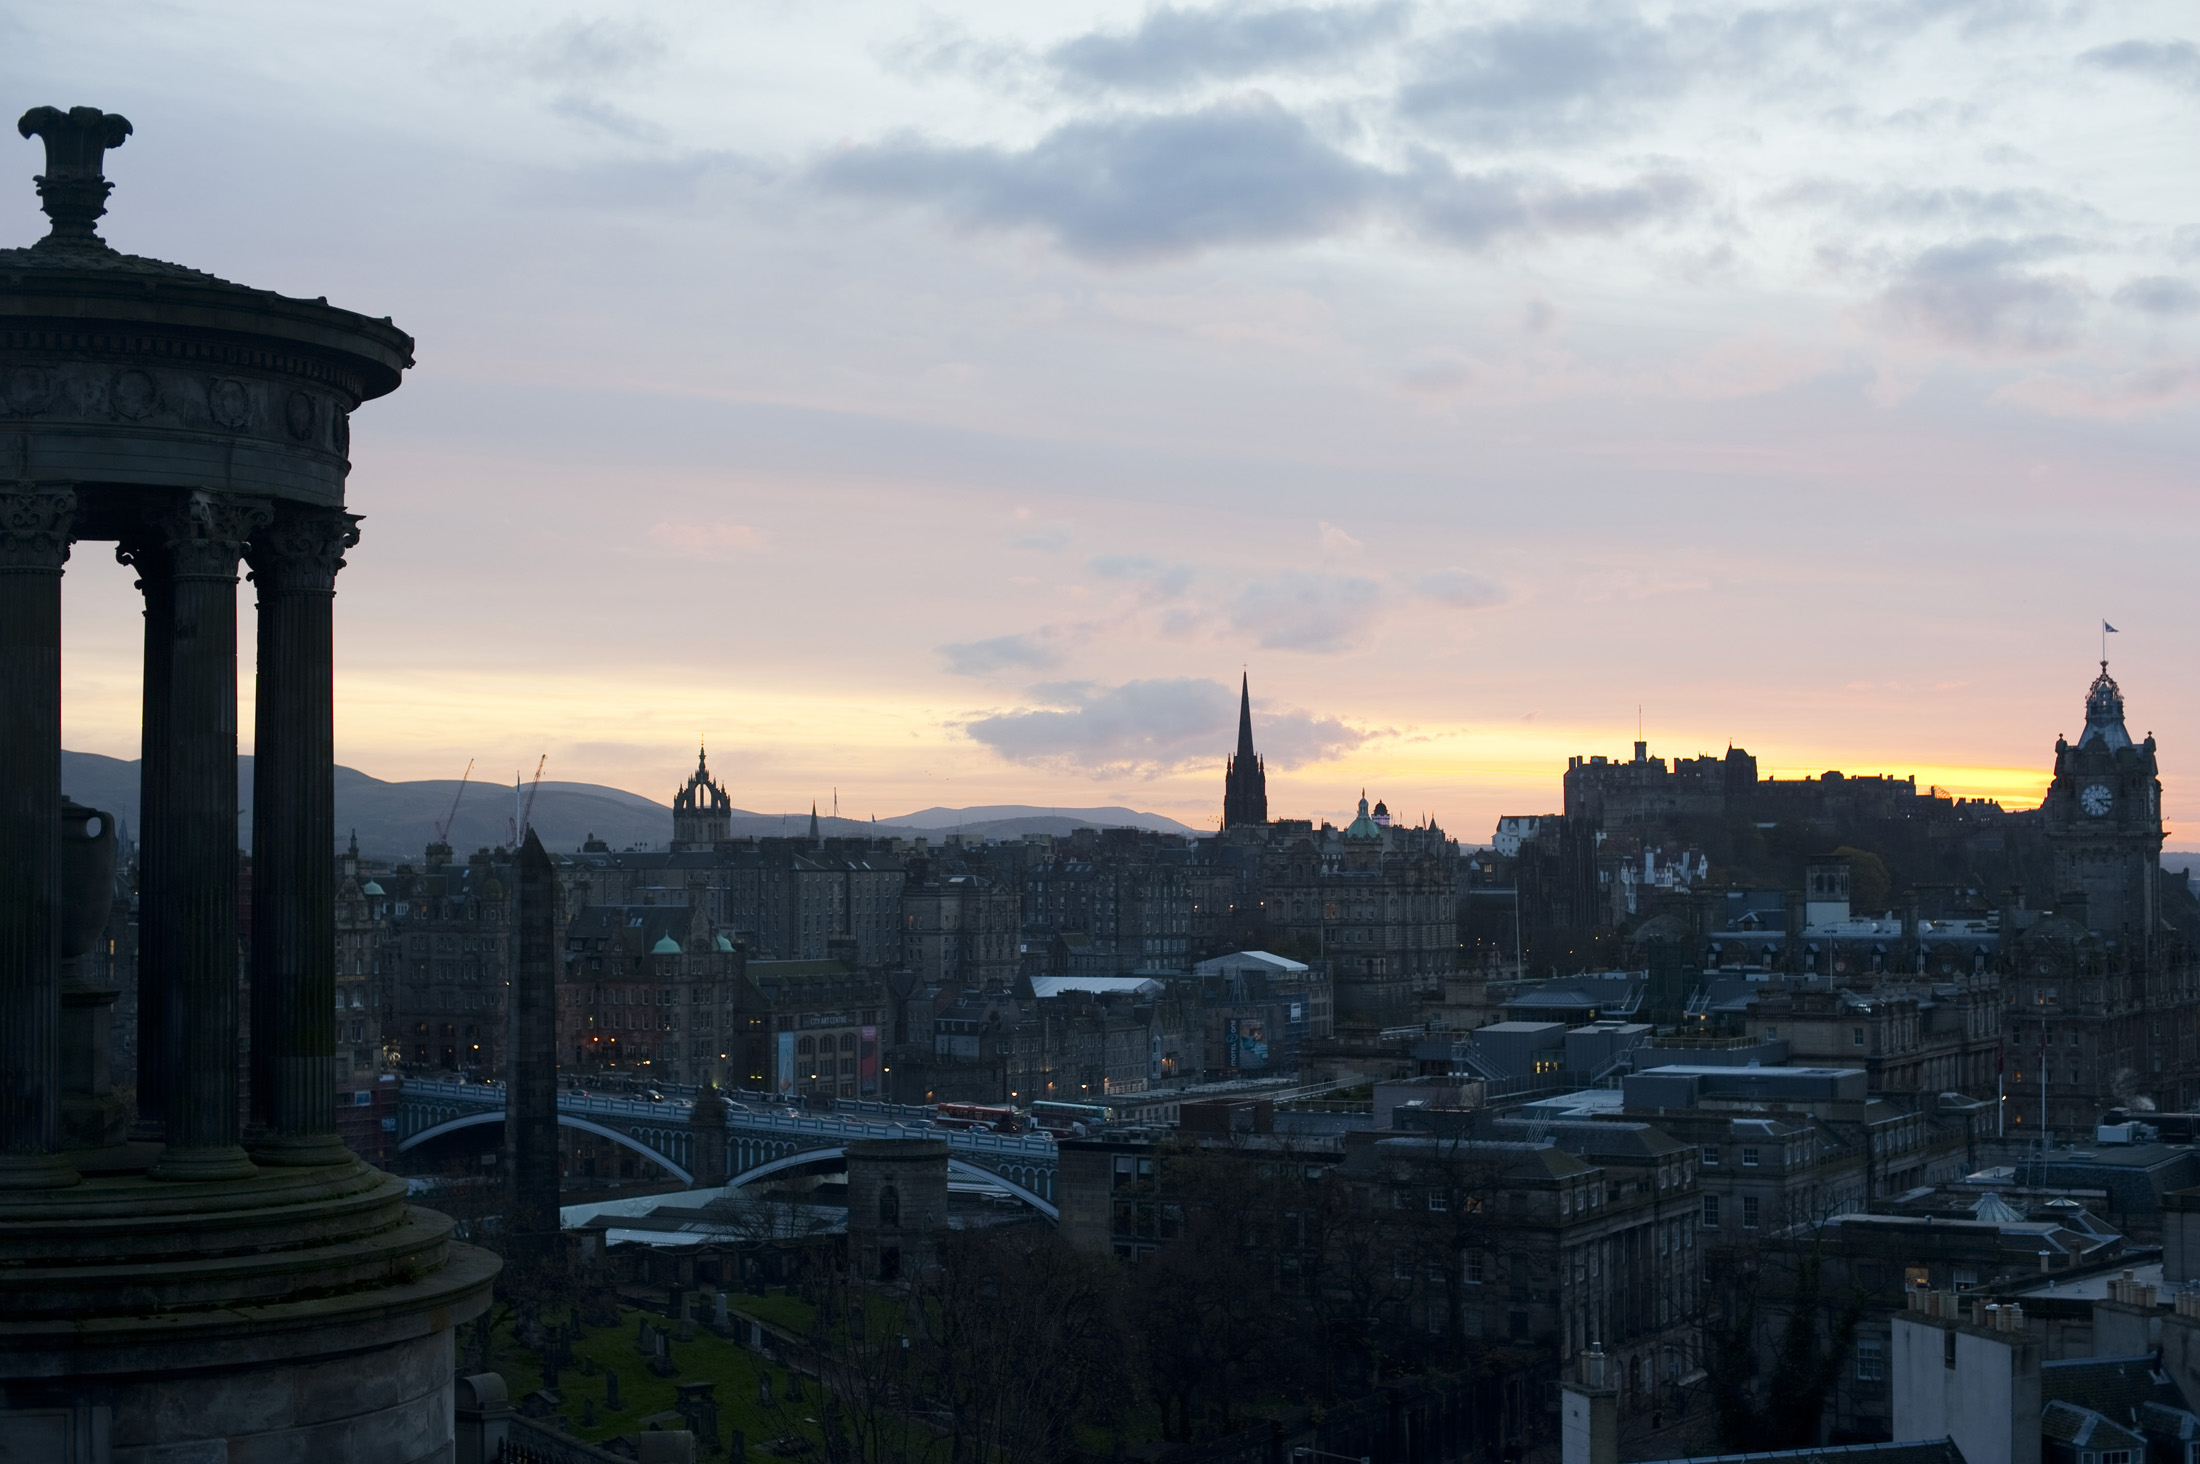 Edinburgh skyline nicknamed the Athens of the North of Old Smokey